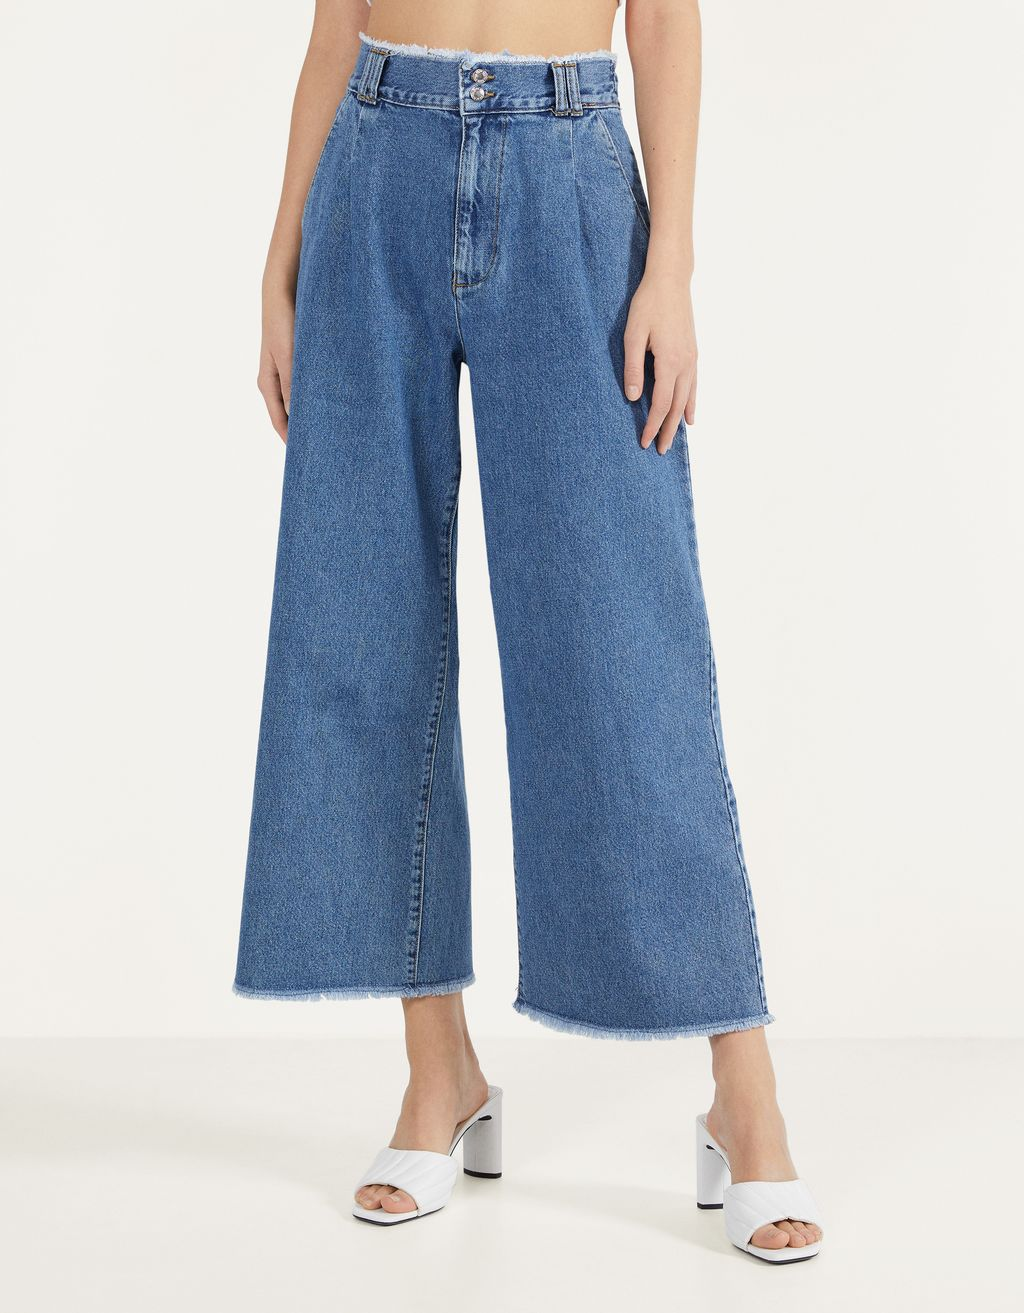 Culotte jeans with frayed hems